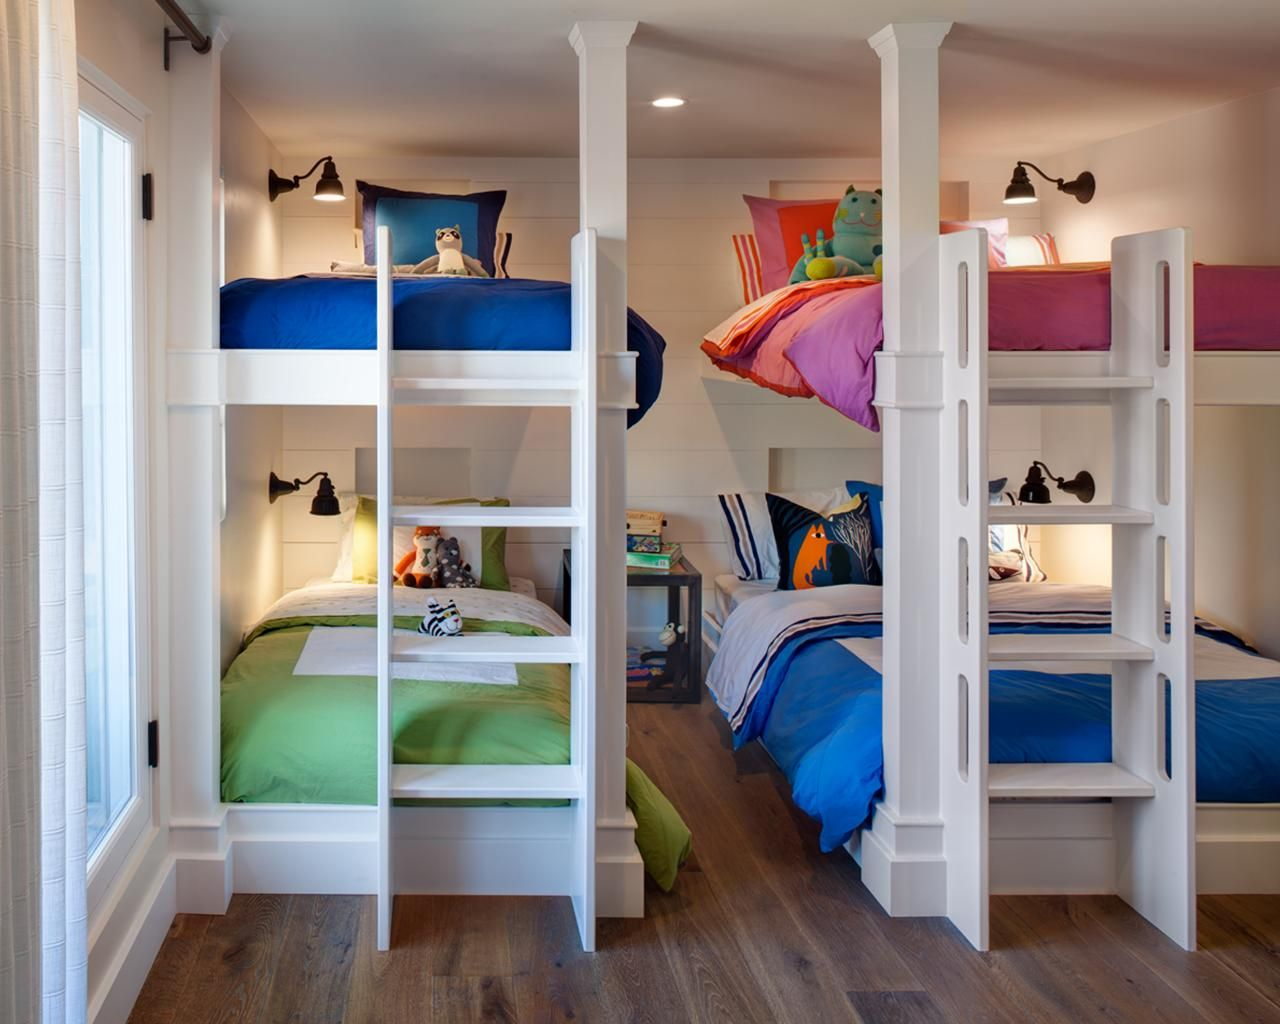 54 best bunk room images on pinterest | bunk rooms, home and